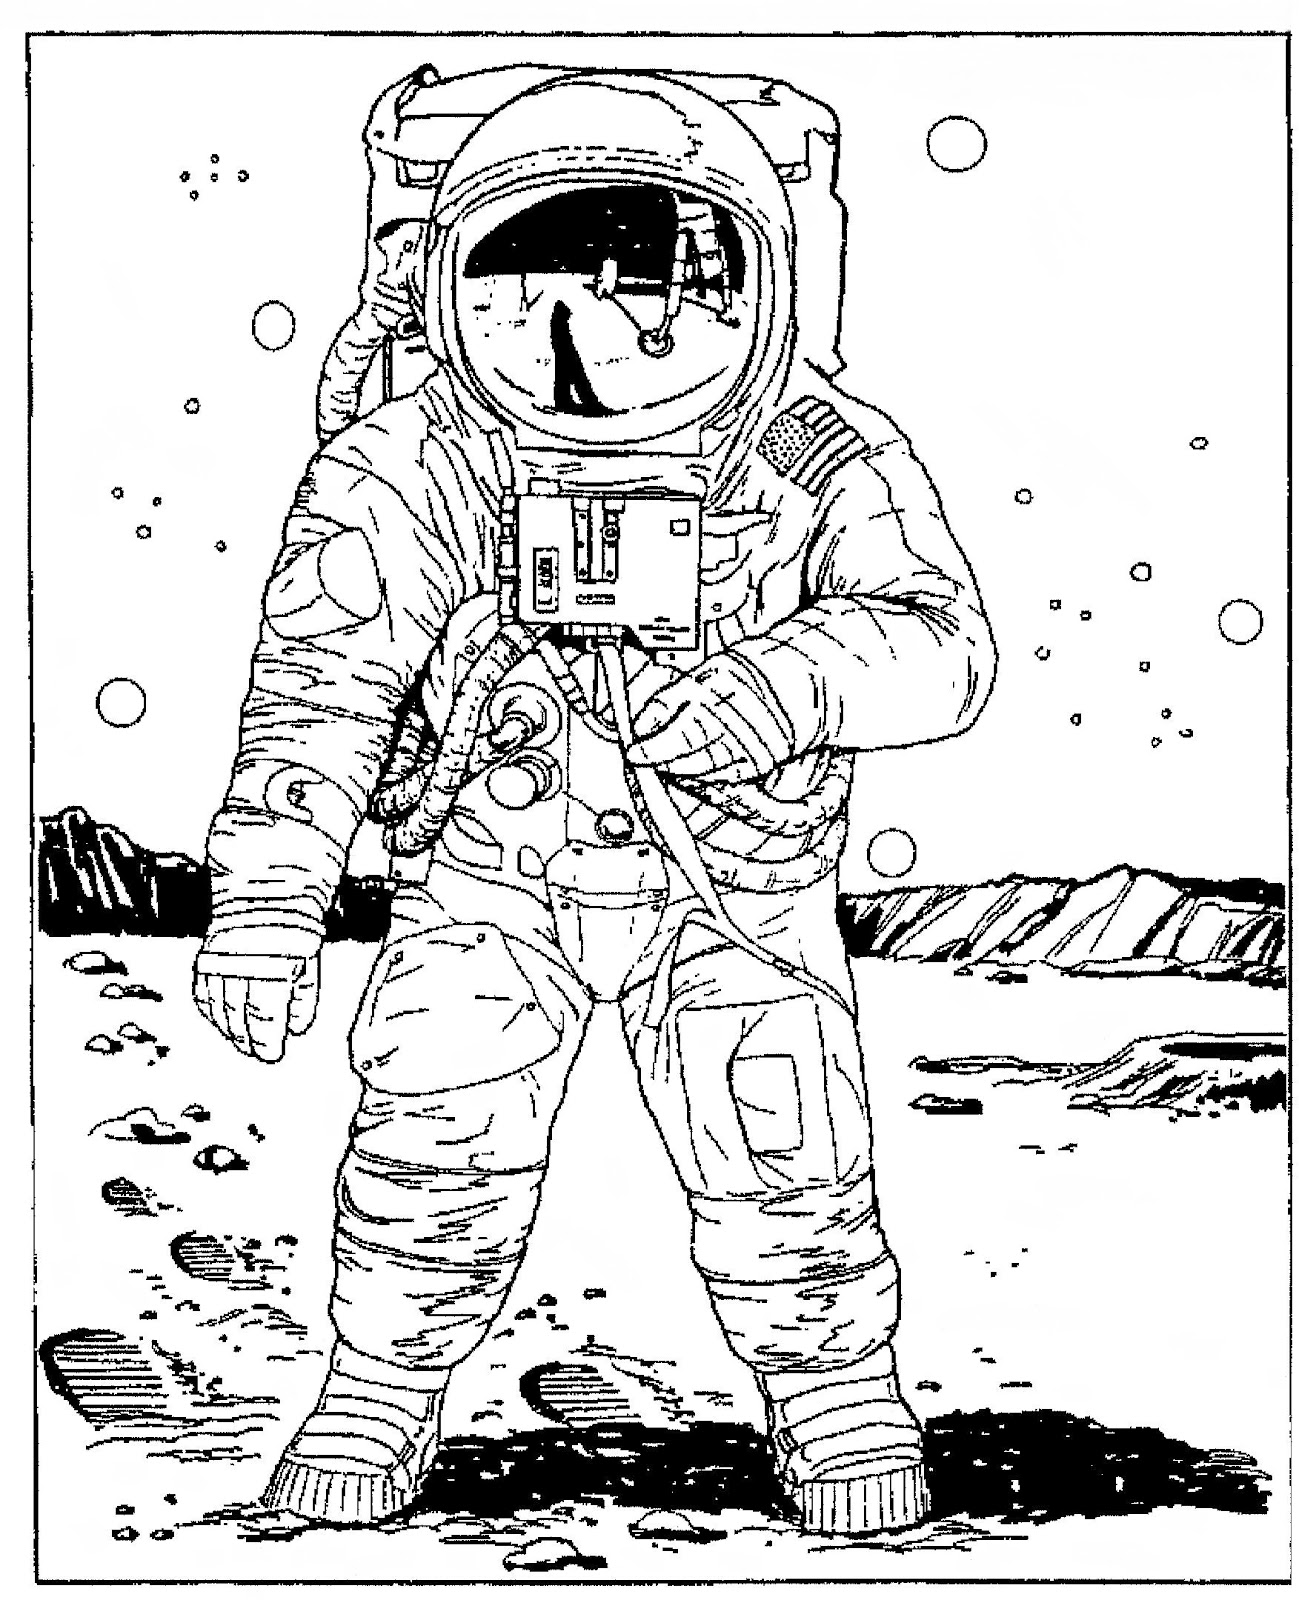 girl astronaut colouring pagesRetro Astronaut Drawing